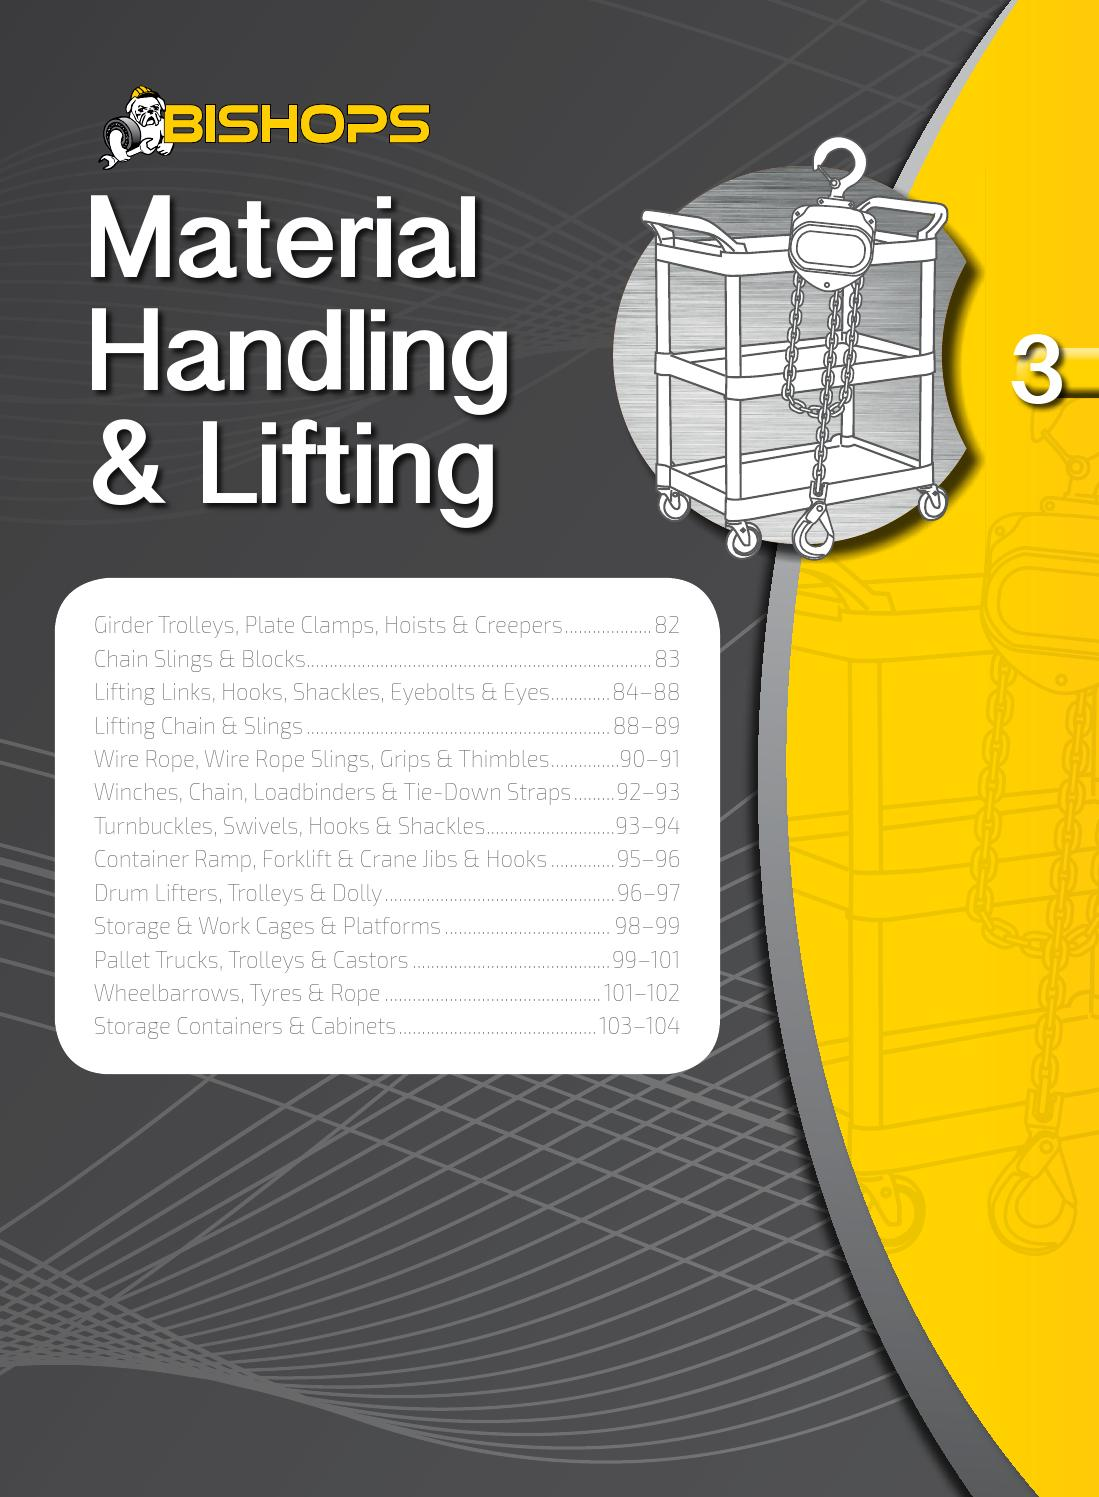 Bishops Material Handling & Lifting by ATOM - issuu